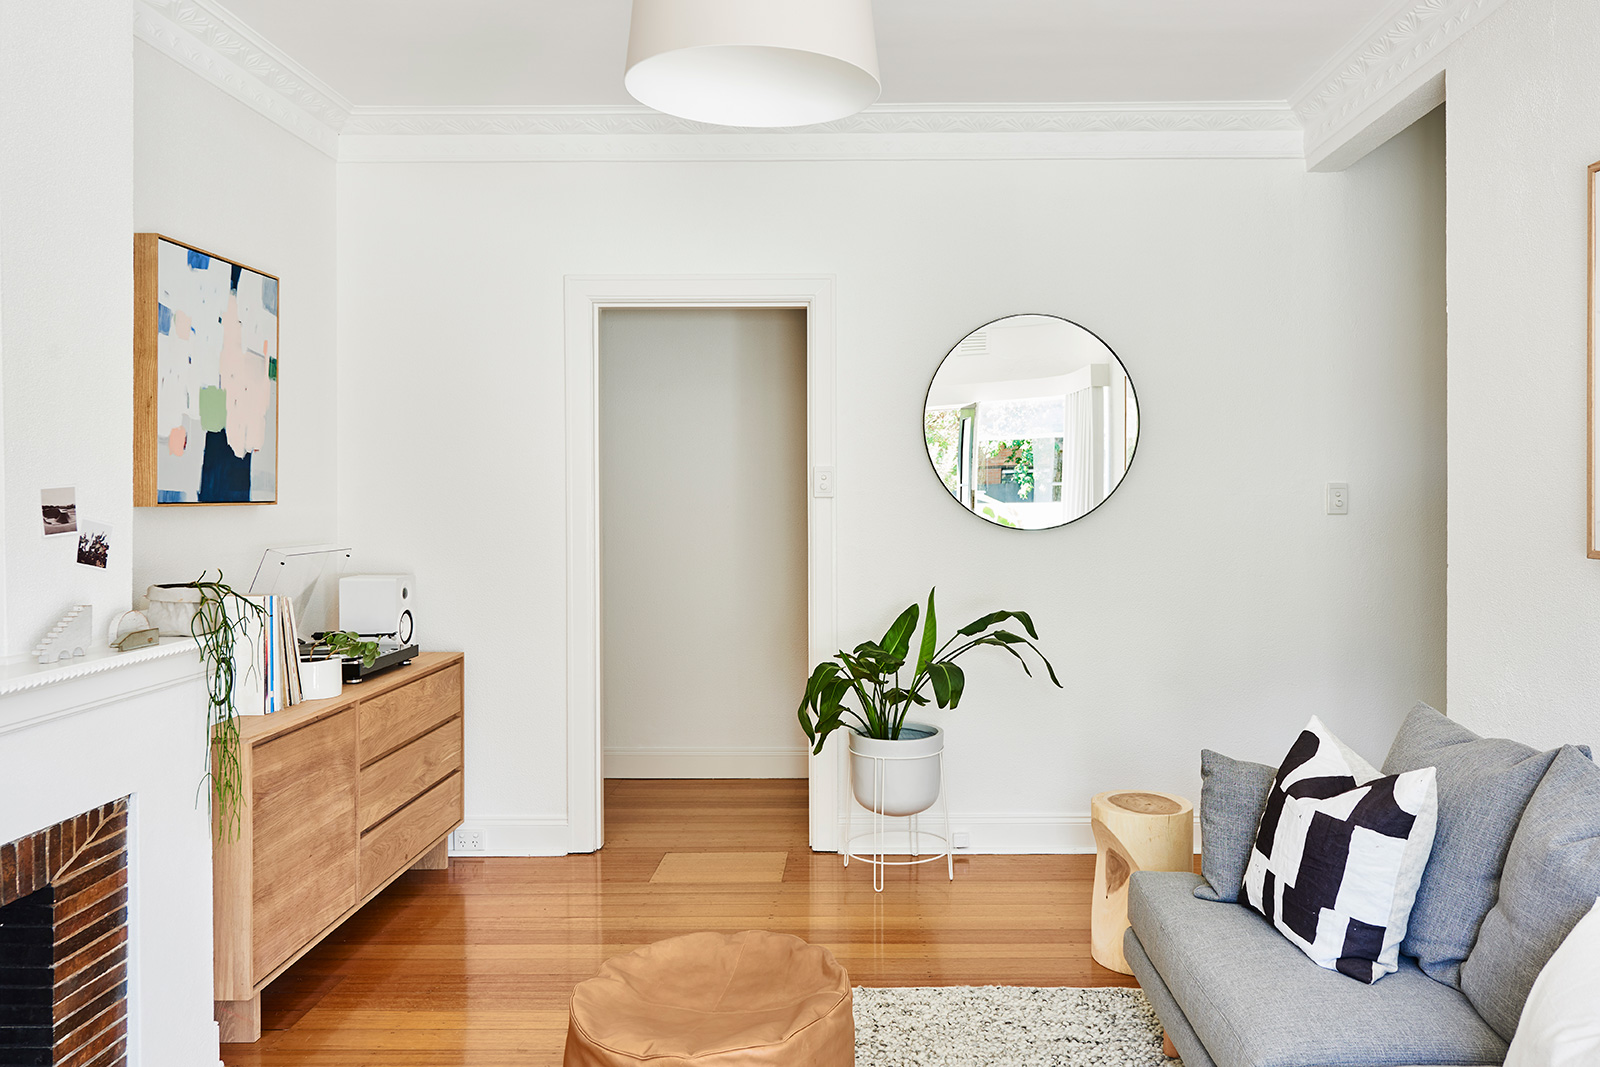 Hunting-for-George-Armadale-Apartment-Lucy-Glade-Wright-09-low-res.jpg